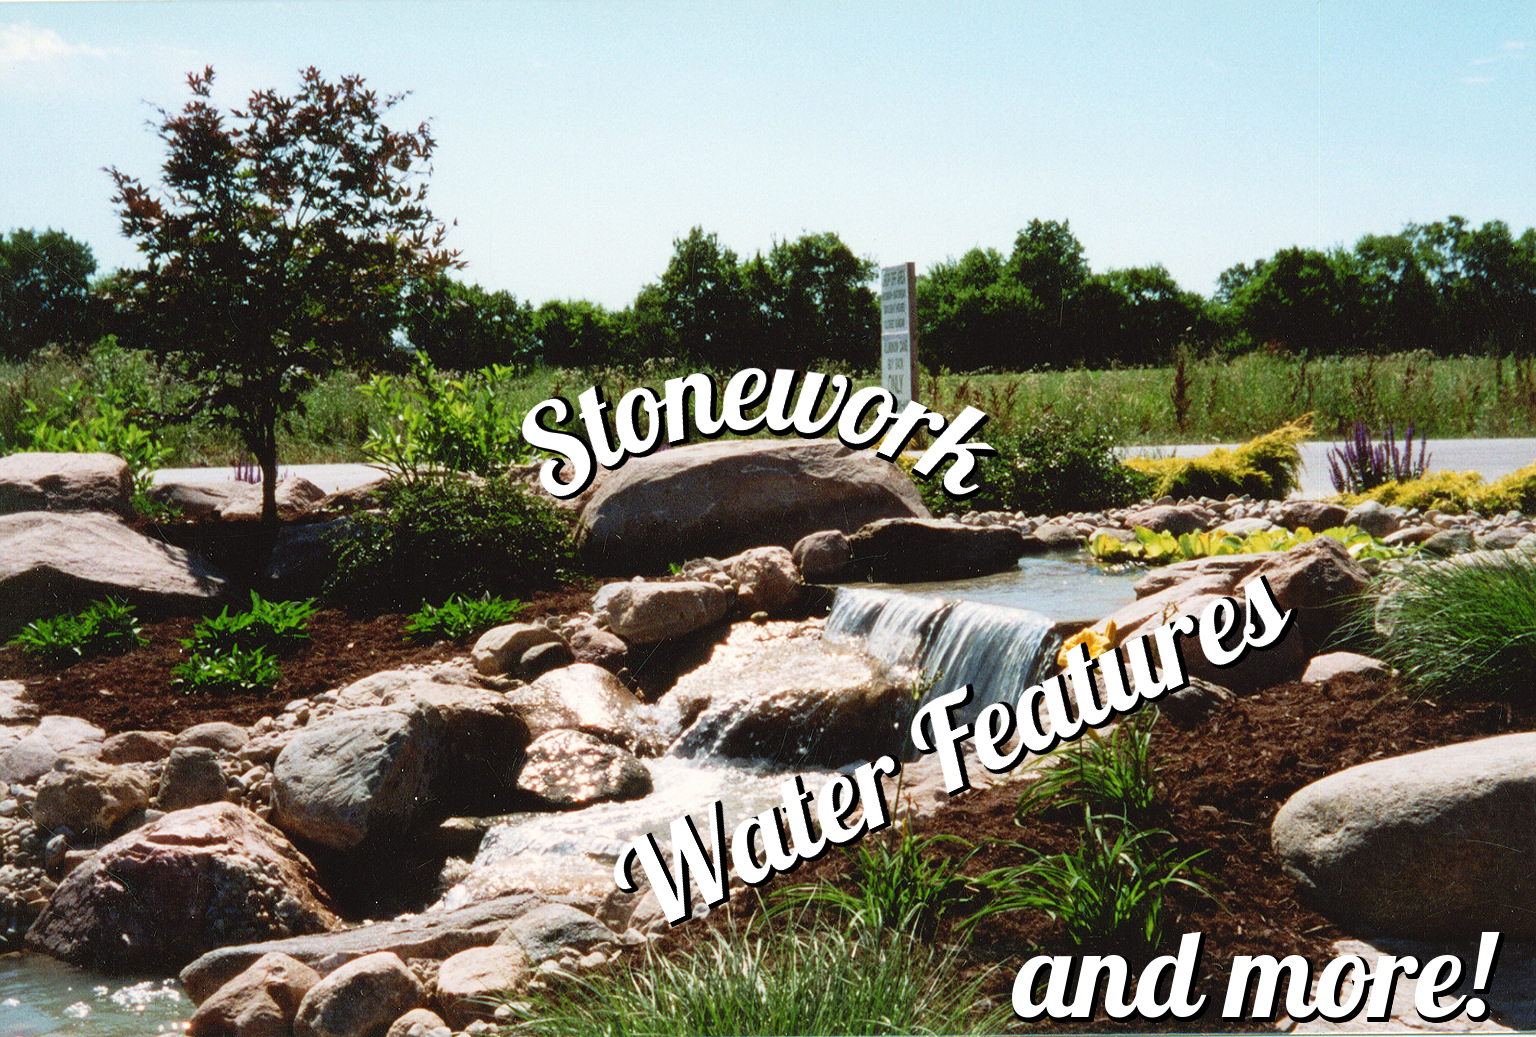 Stonework, water features, and more